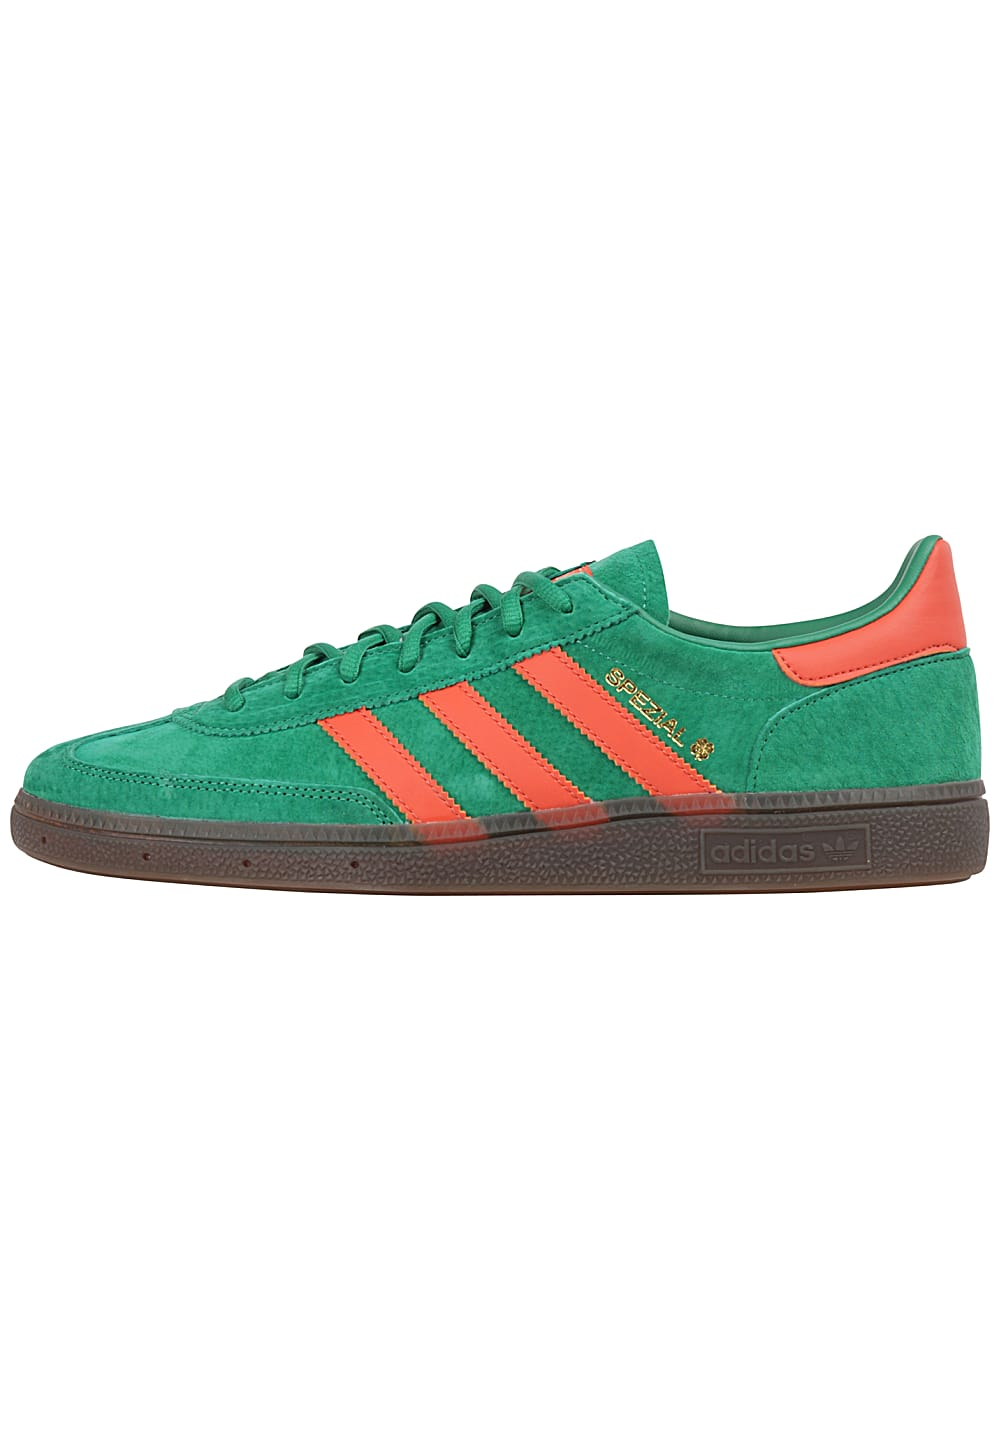 ADIDAS ORIGINALS Handball Spezial Sneakers voor Heren